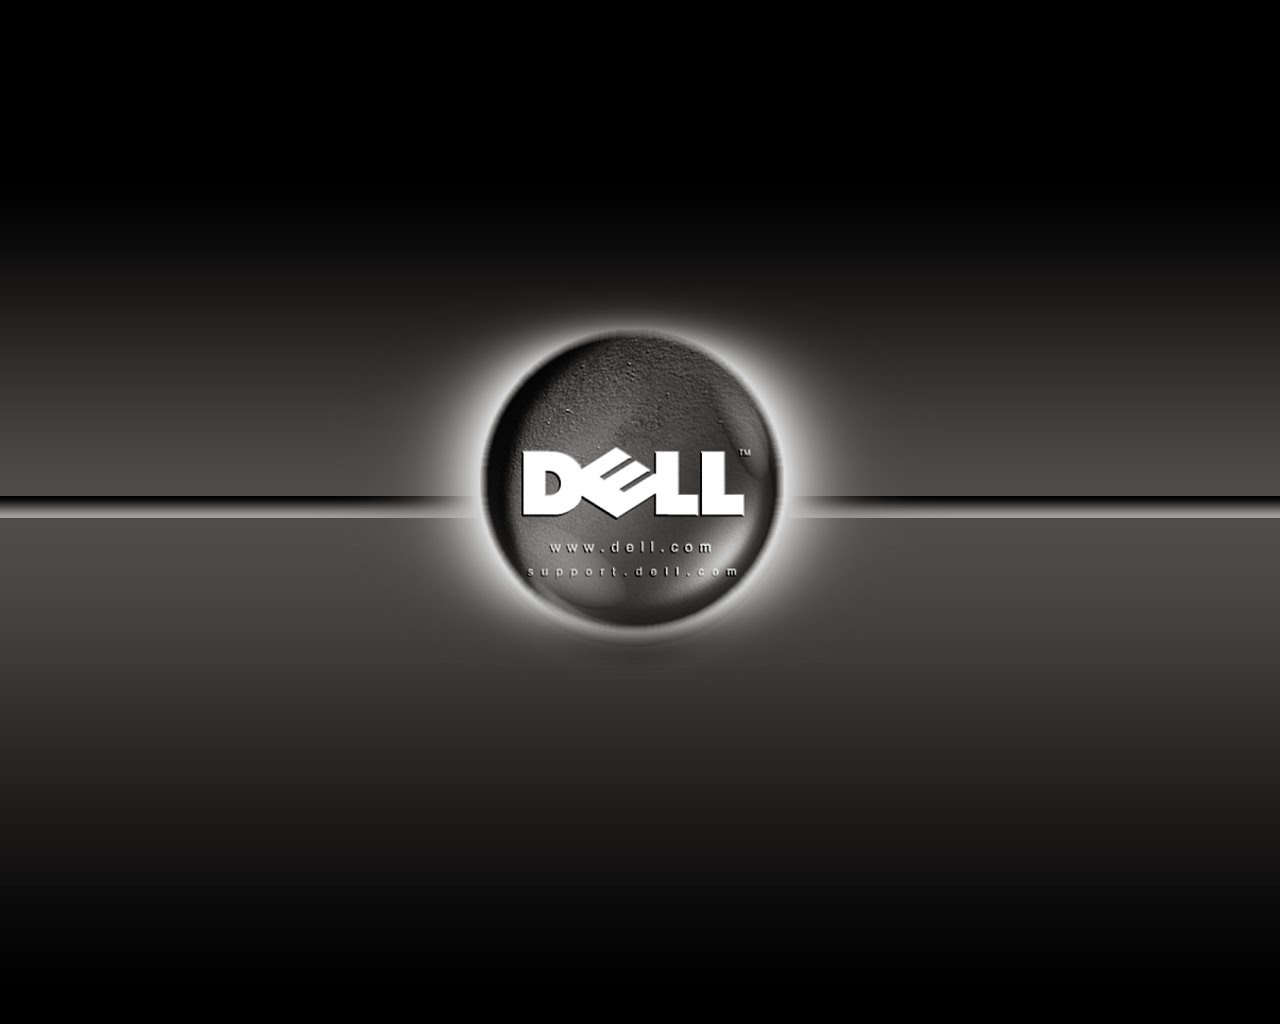 supply chain management dell optimizes lean manufacturing processes dell announced in 2012 that it would alter its operating model as a part of a three year 2 billion cost cutting initiative even though dell led the way in